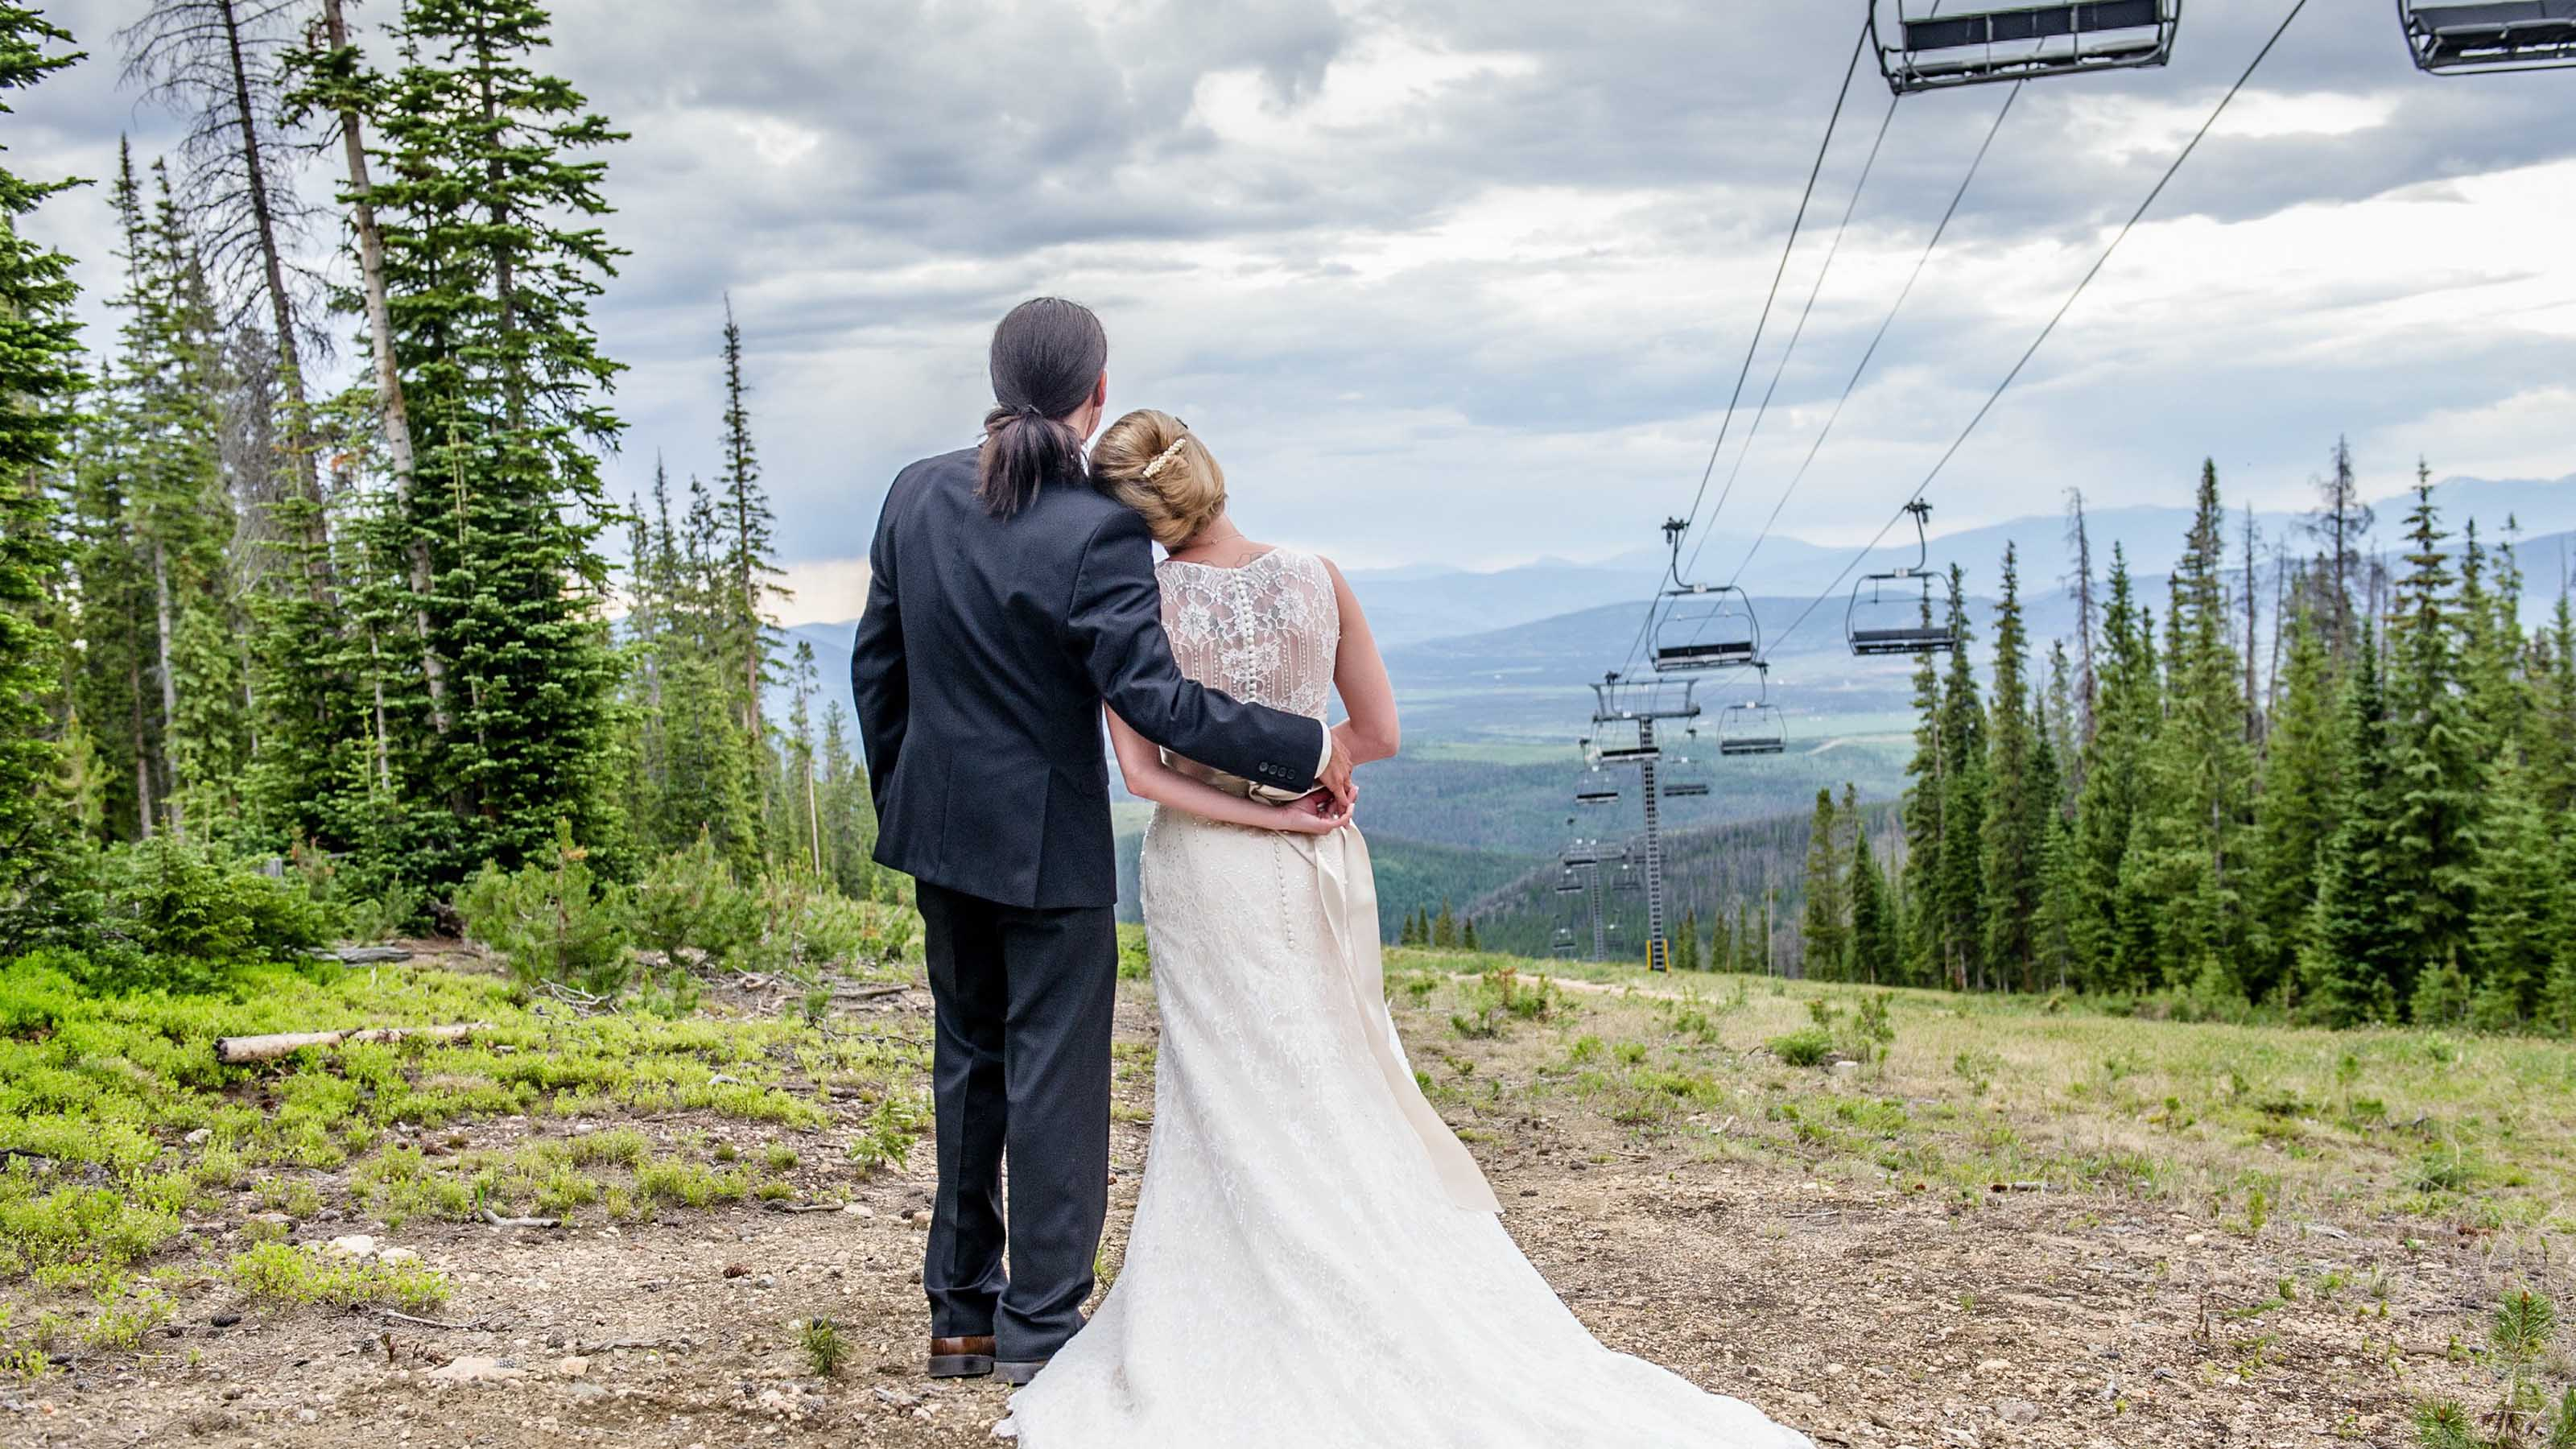 We Truly Had A Wedding That Surped All Expectations Everything Was Beautiful And Coordinated Perfectly By Winter Park Resort Staff